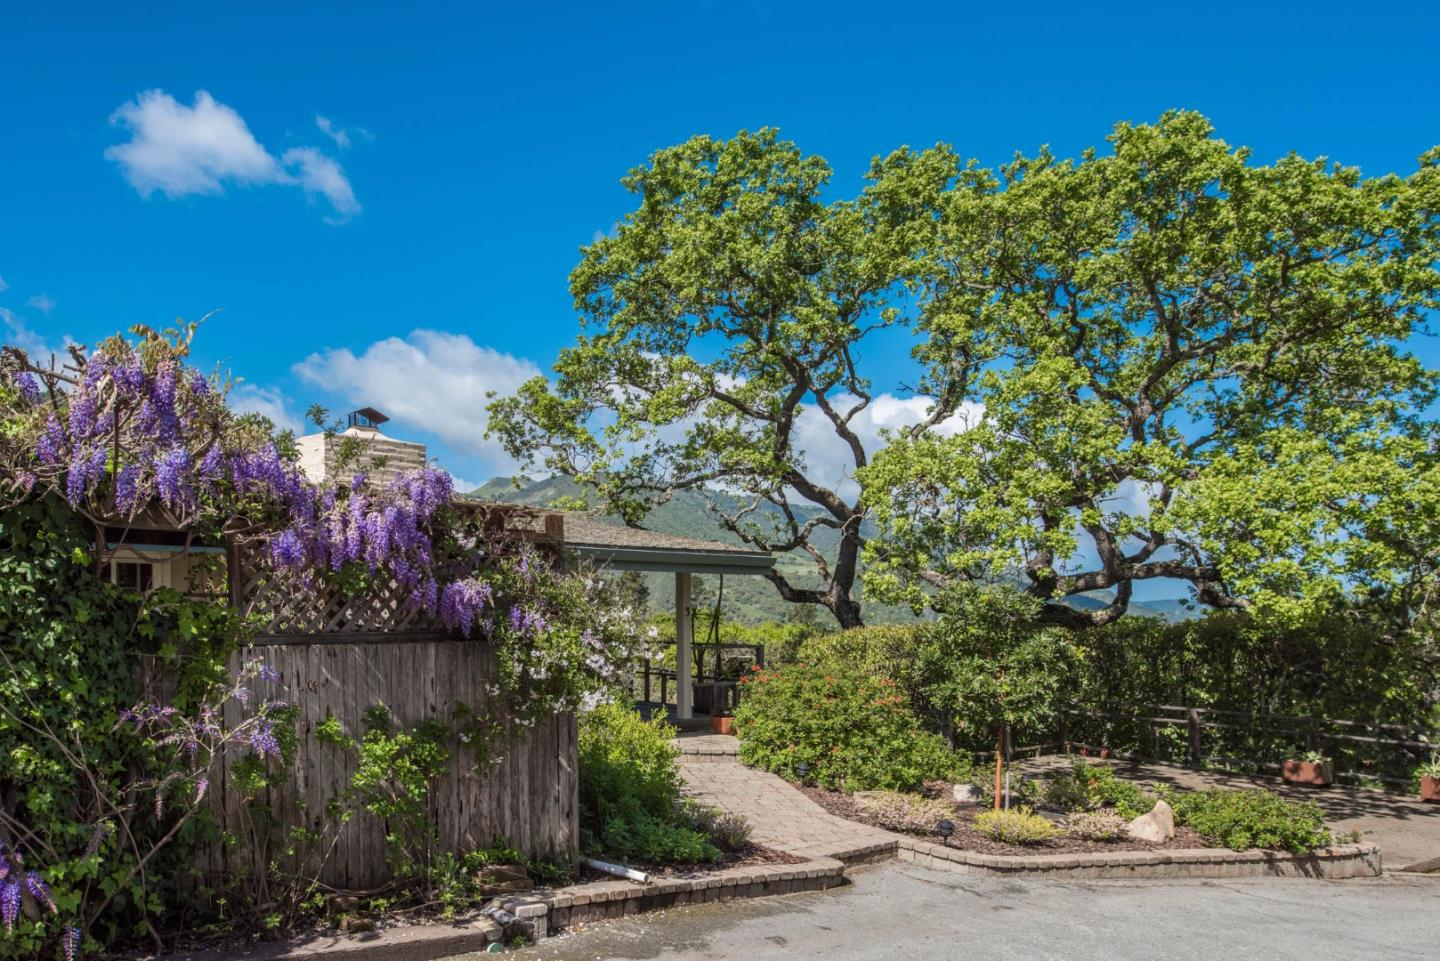 Additional photo for property listing at 3 Laurel Drive  Carmel Valley, Kalifornien 93924 Vereinigte Staaten